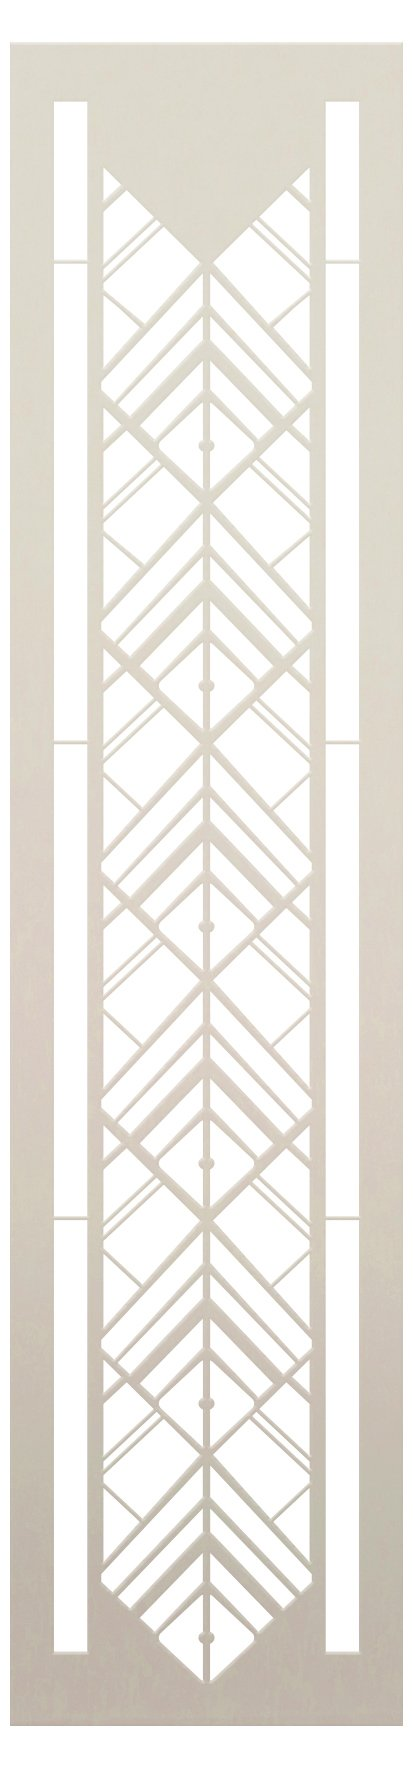 Medieval Double Diamond Stack Band Stencil by StudioR12   Craft DIY Repeat Pattern Home Decor   Paint Wood Sign Reusable Mylar Template   Select Size